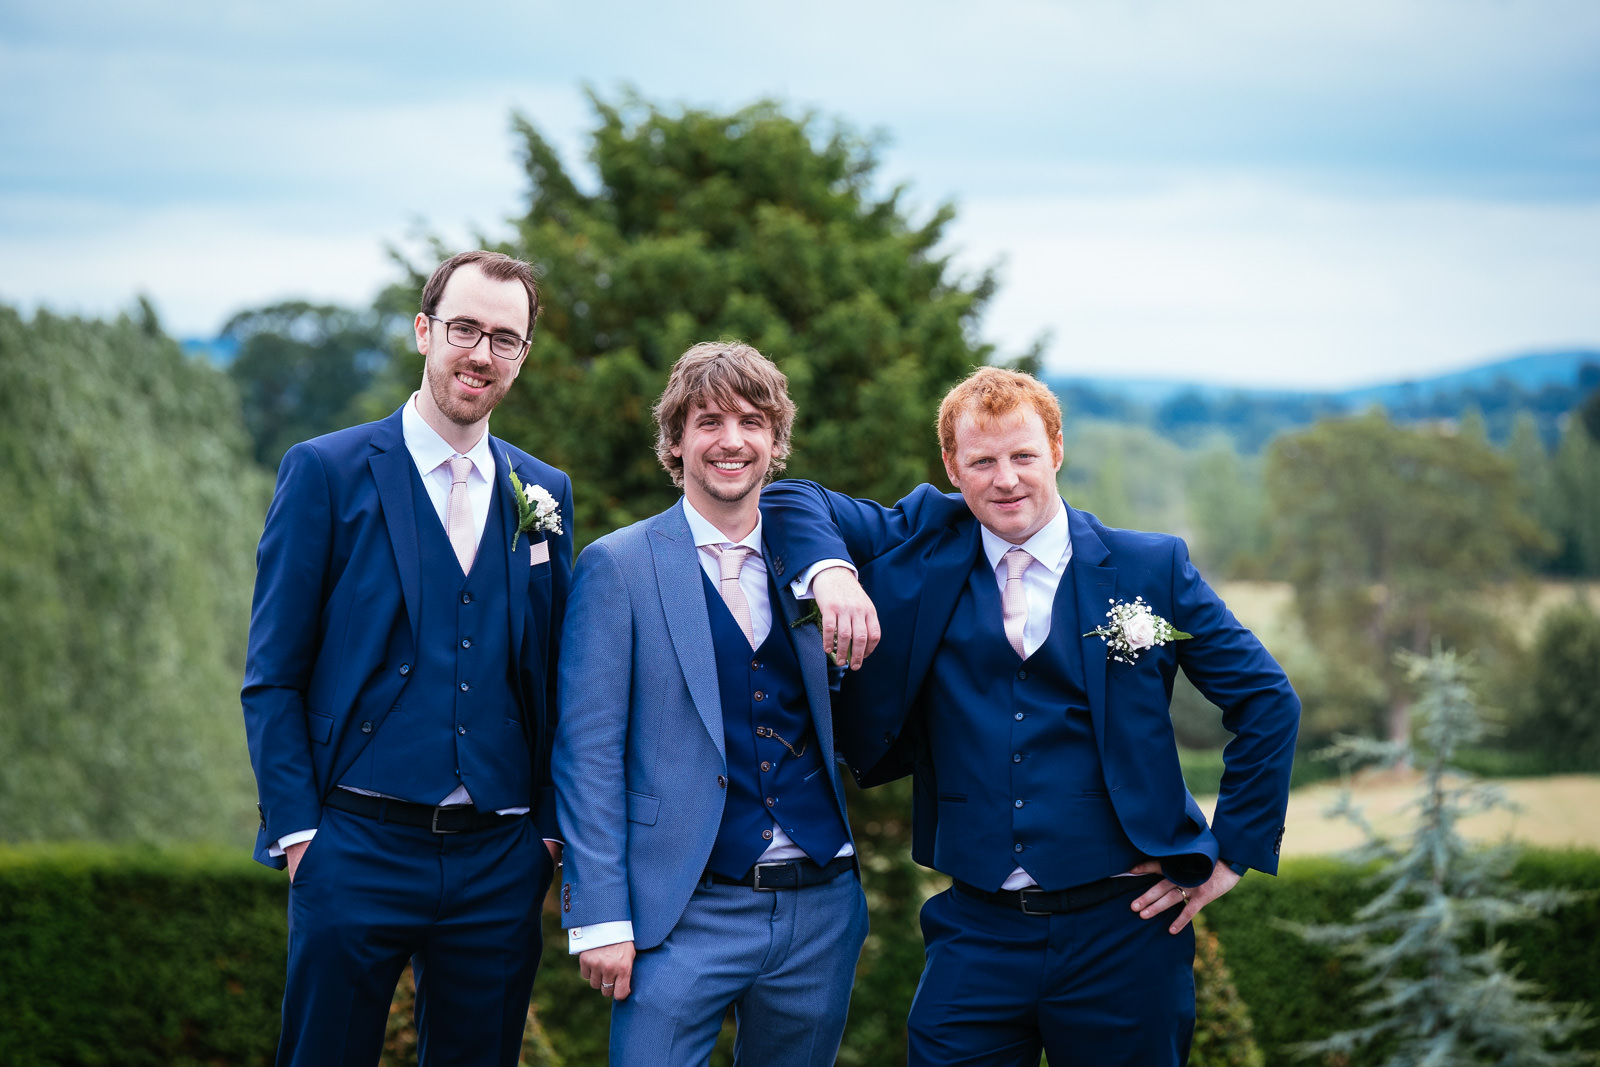 palmerstown estate wedding photographer kildare 1169